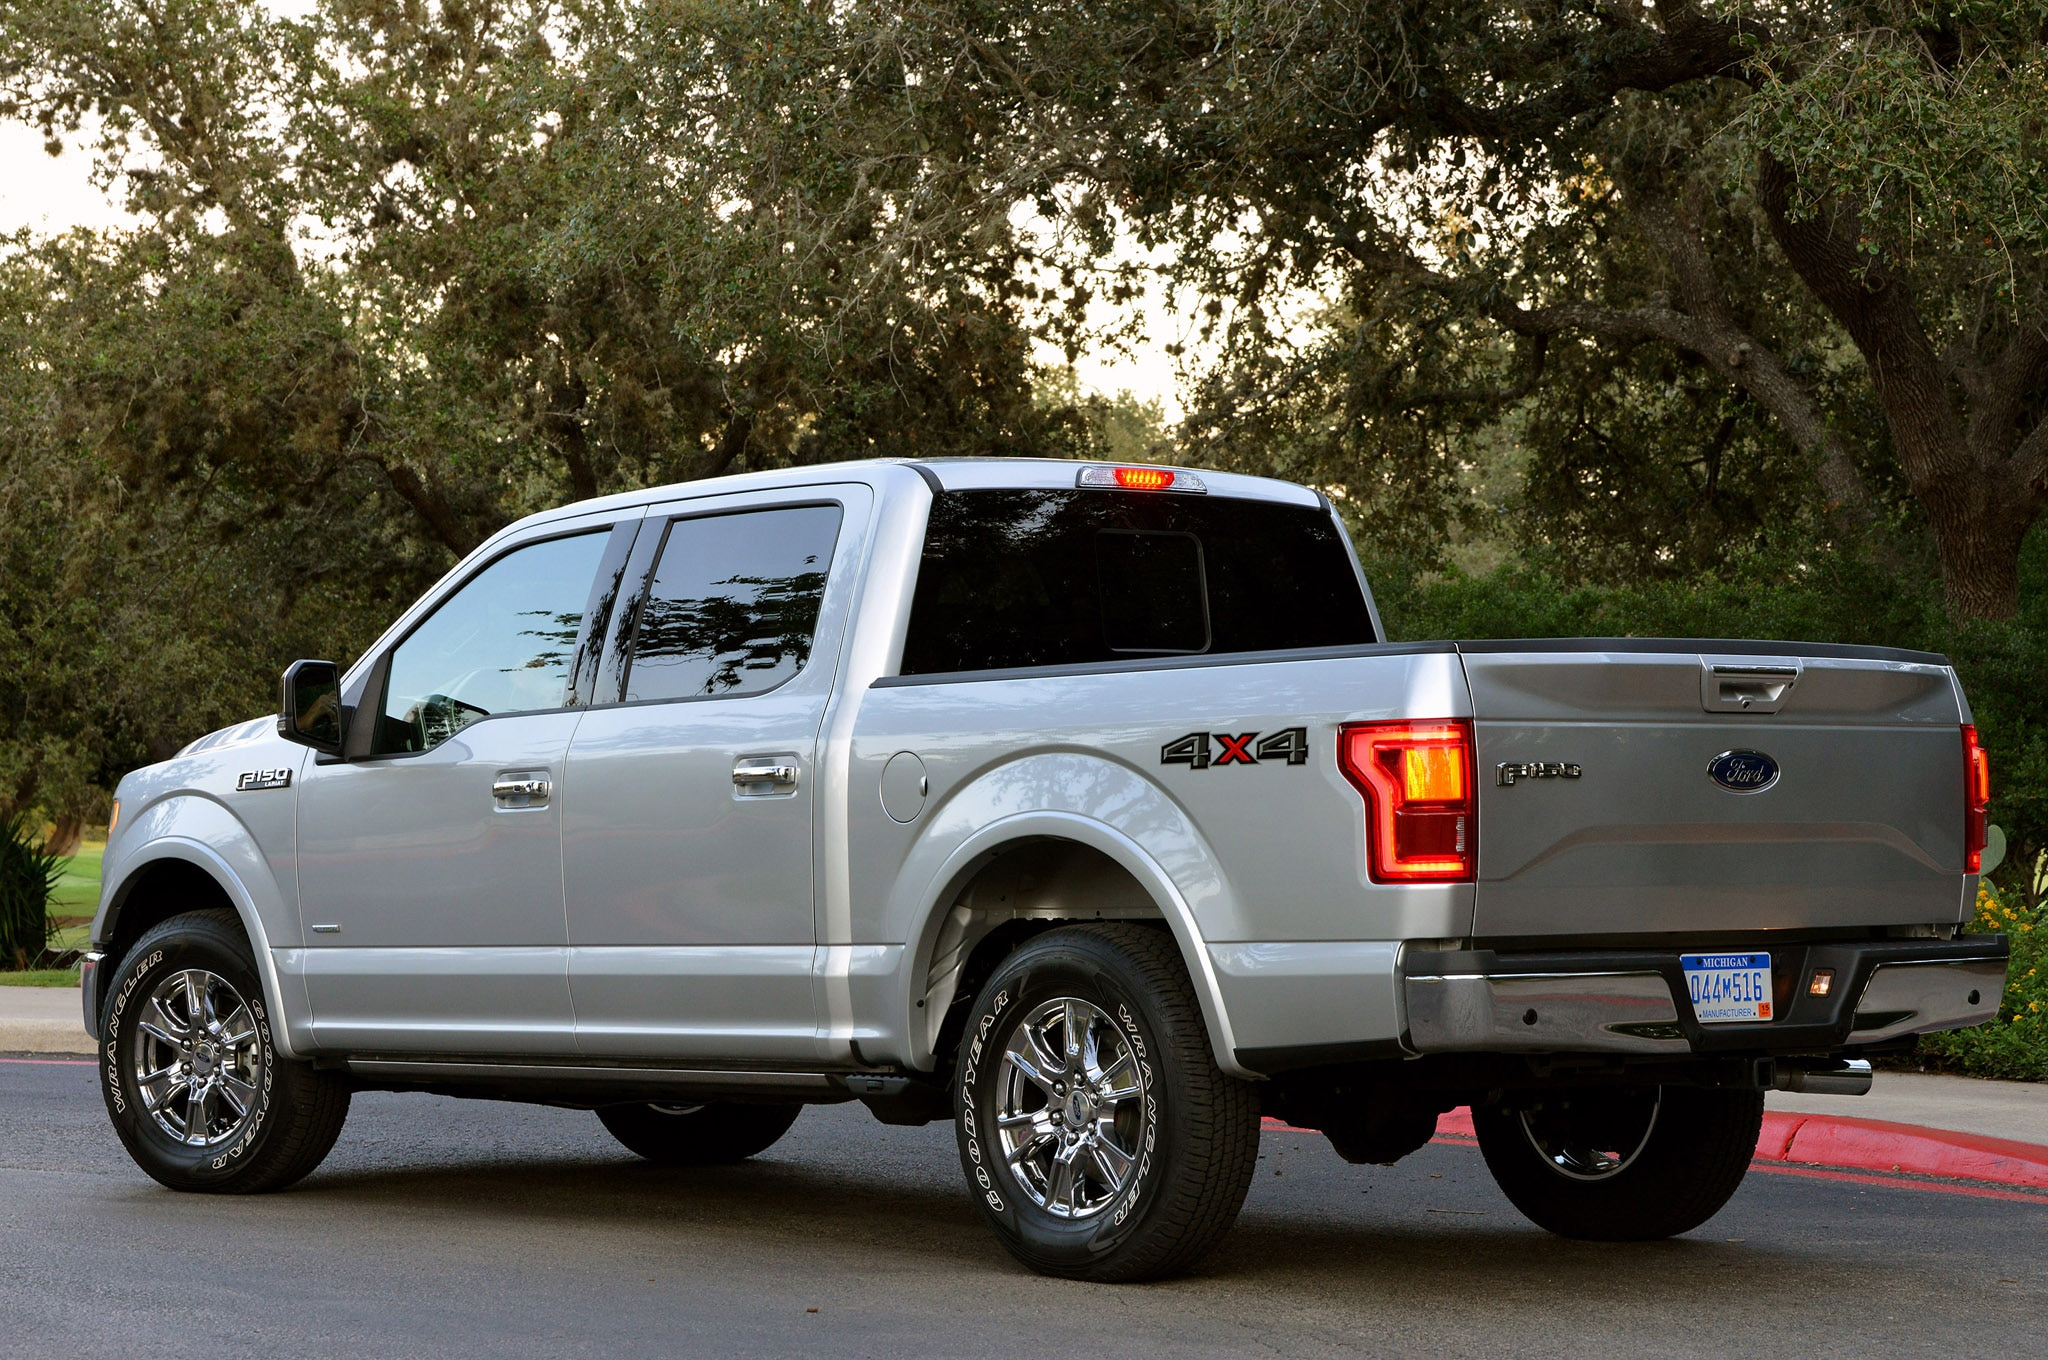 2015 ford f 150 2 7l achieves 18 5 mpg combined in real mpg tests. Black Bedroom Furniture Sets. Home Design Ideas